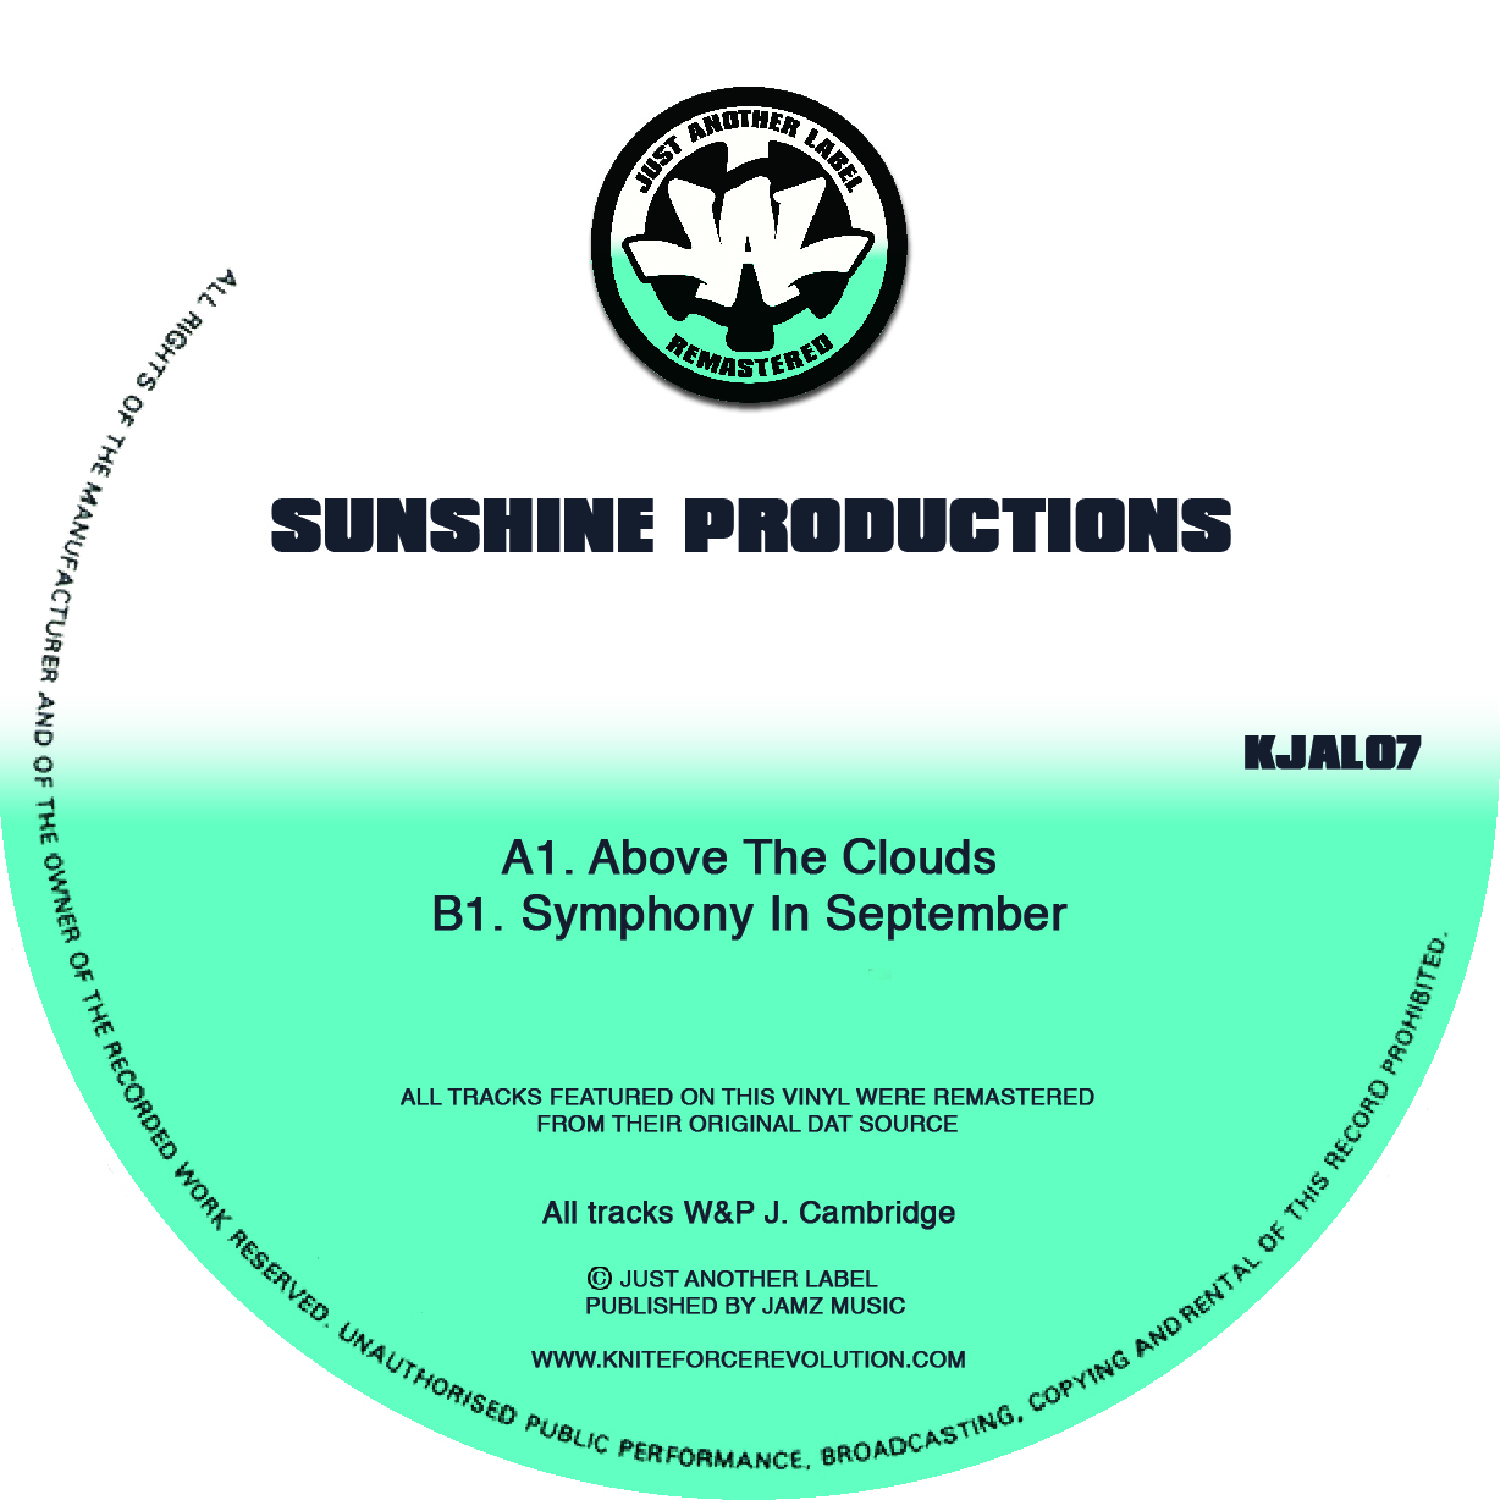 "[KJAL07] Sunshine Productions - Above The Clouds EP (12"" Vinyl + Digital)"